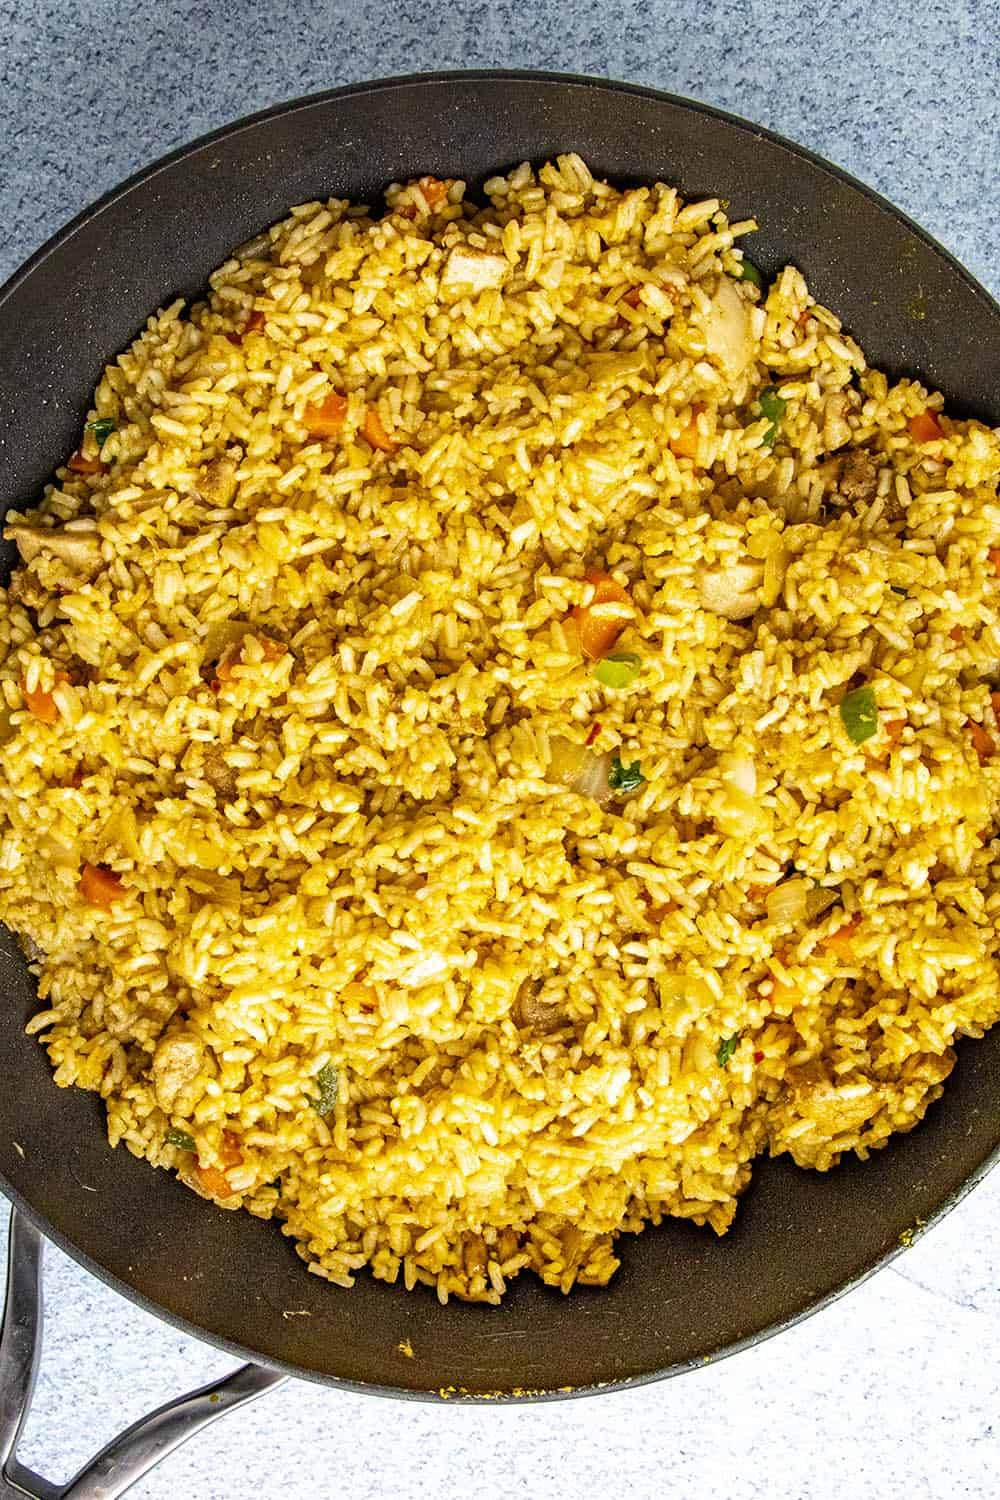 Adding the cooked rice to the hot pan with the chicken and vegetables